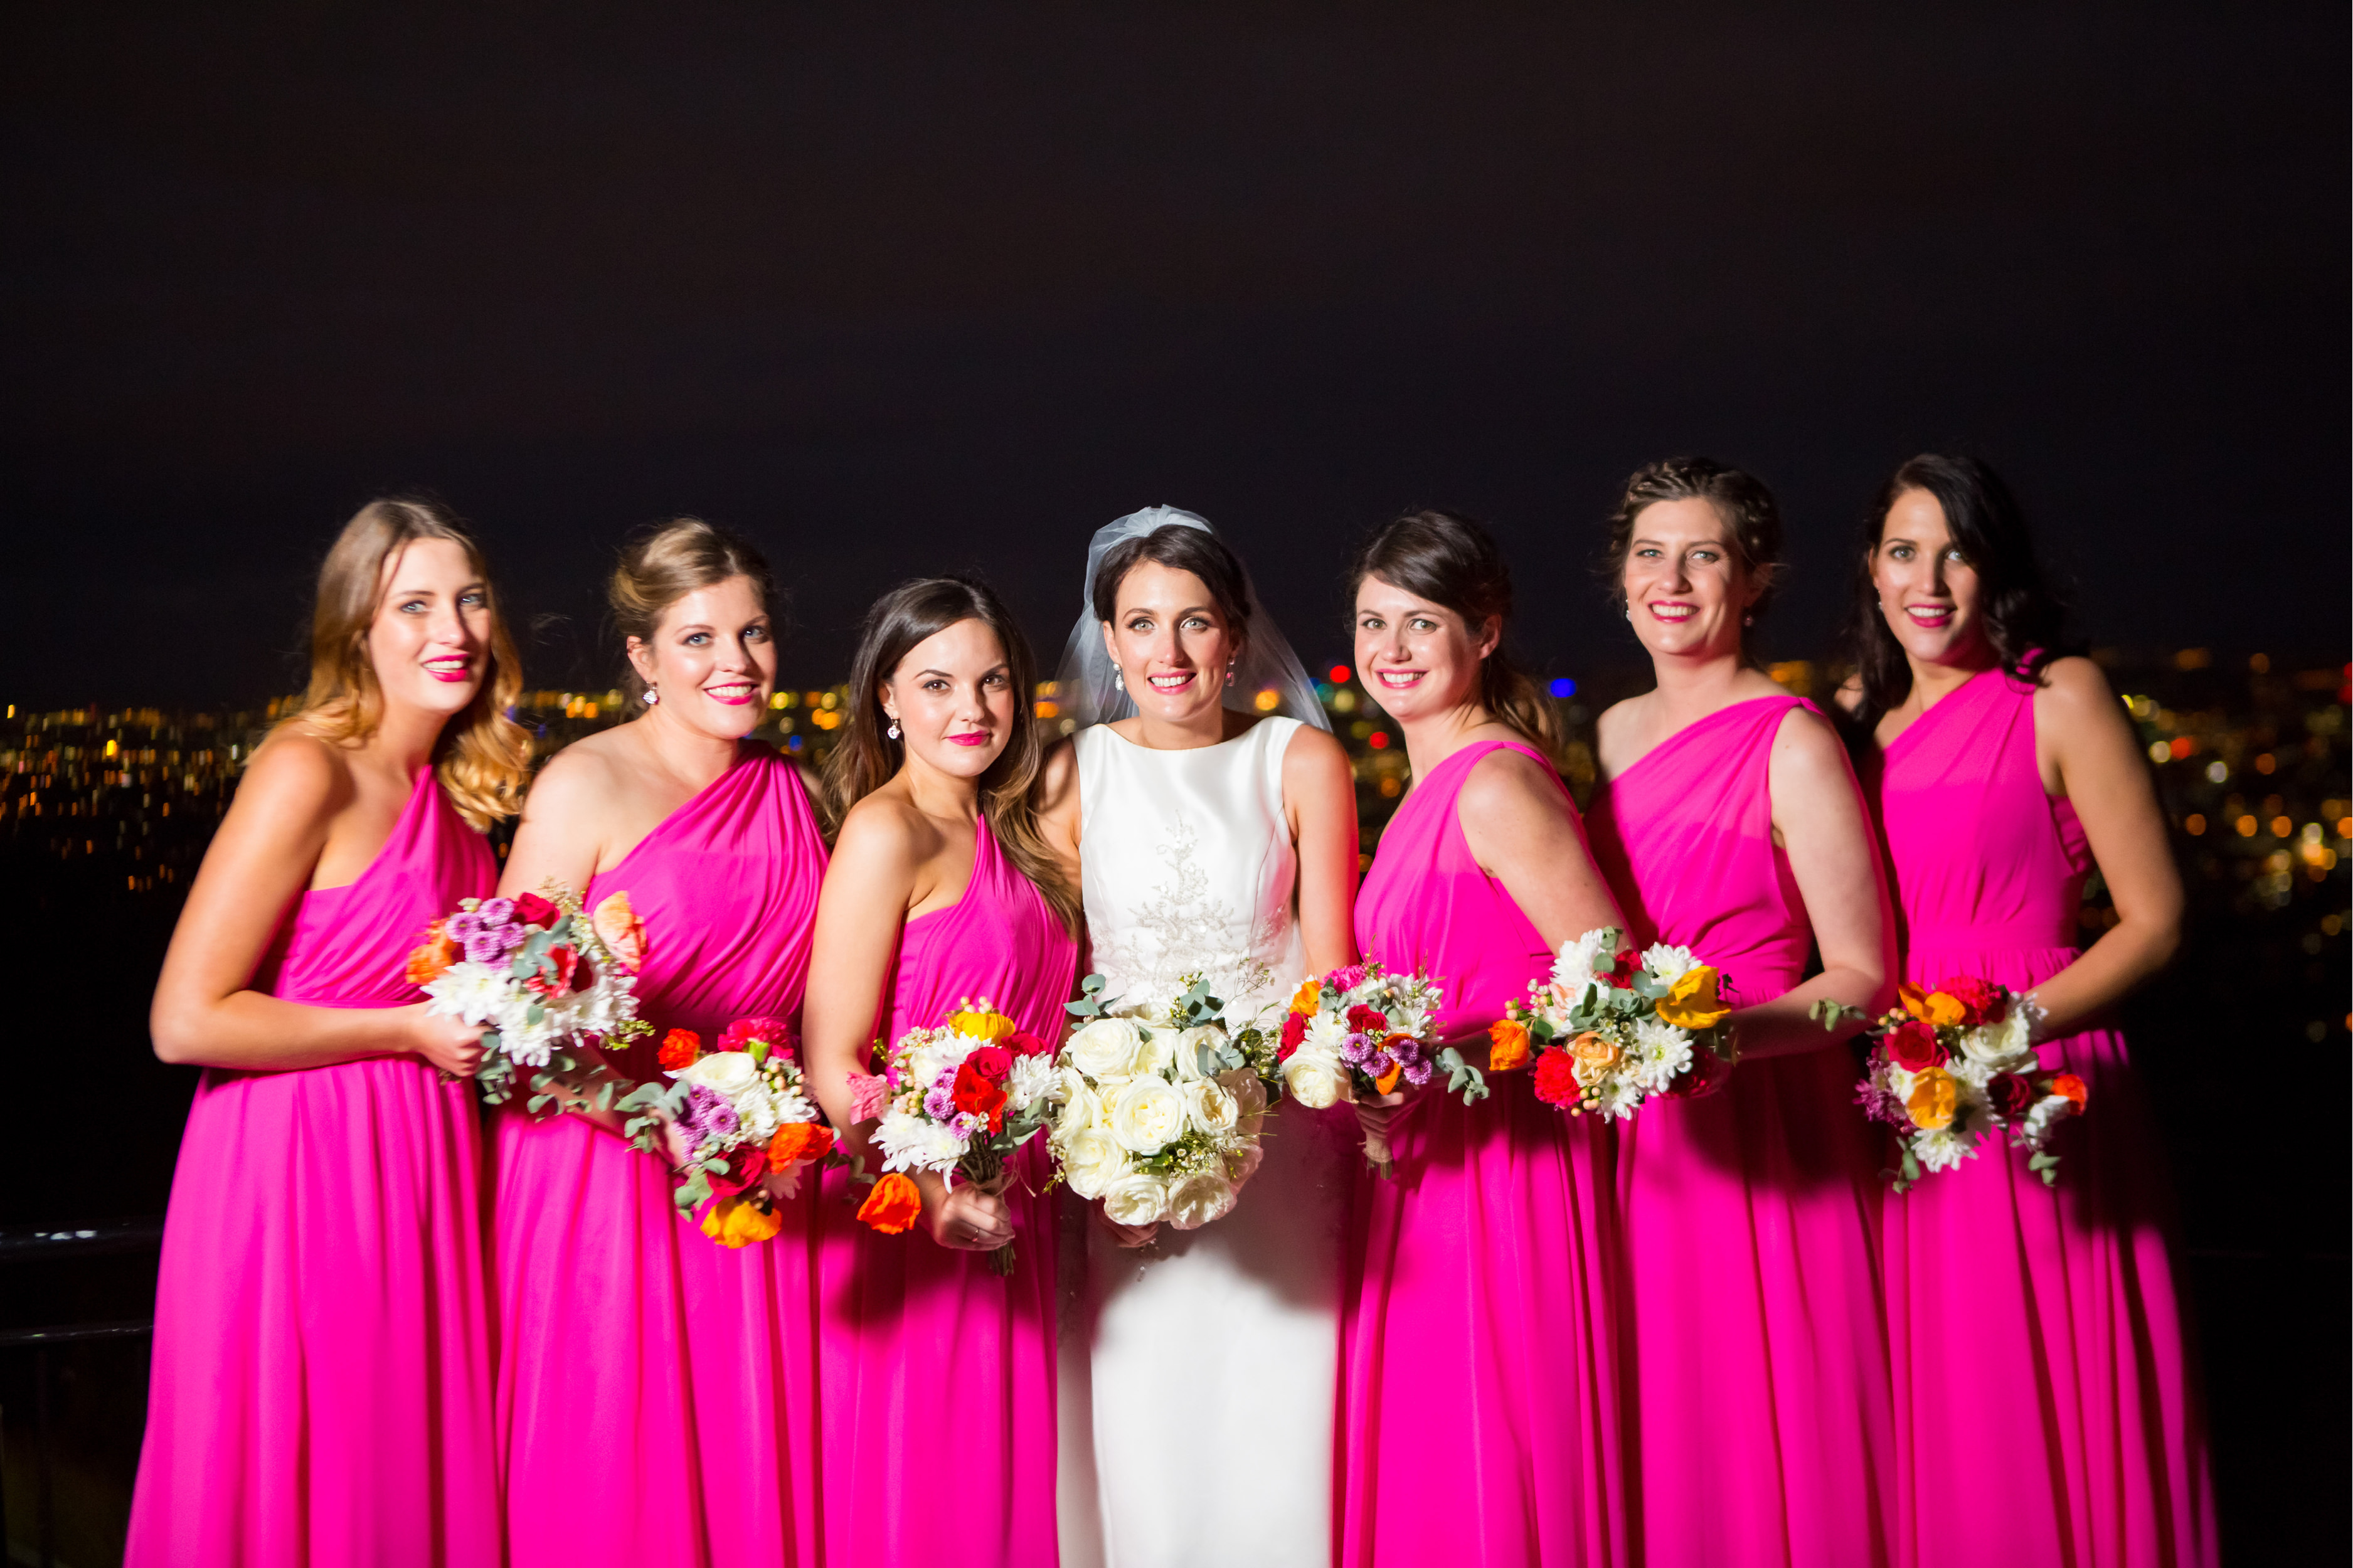 Emma_cleary_photography Destination wedding19